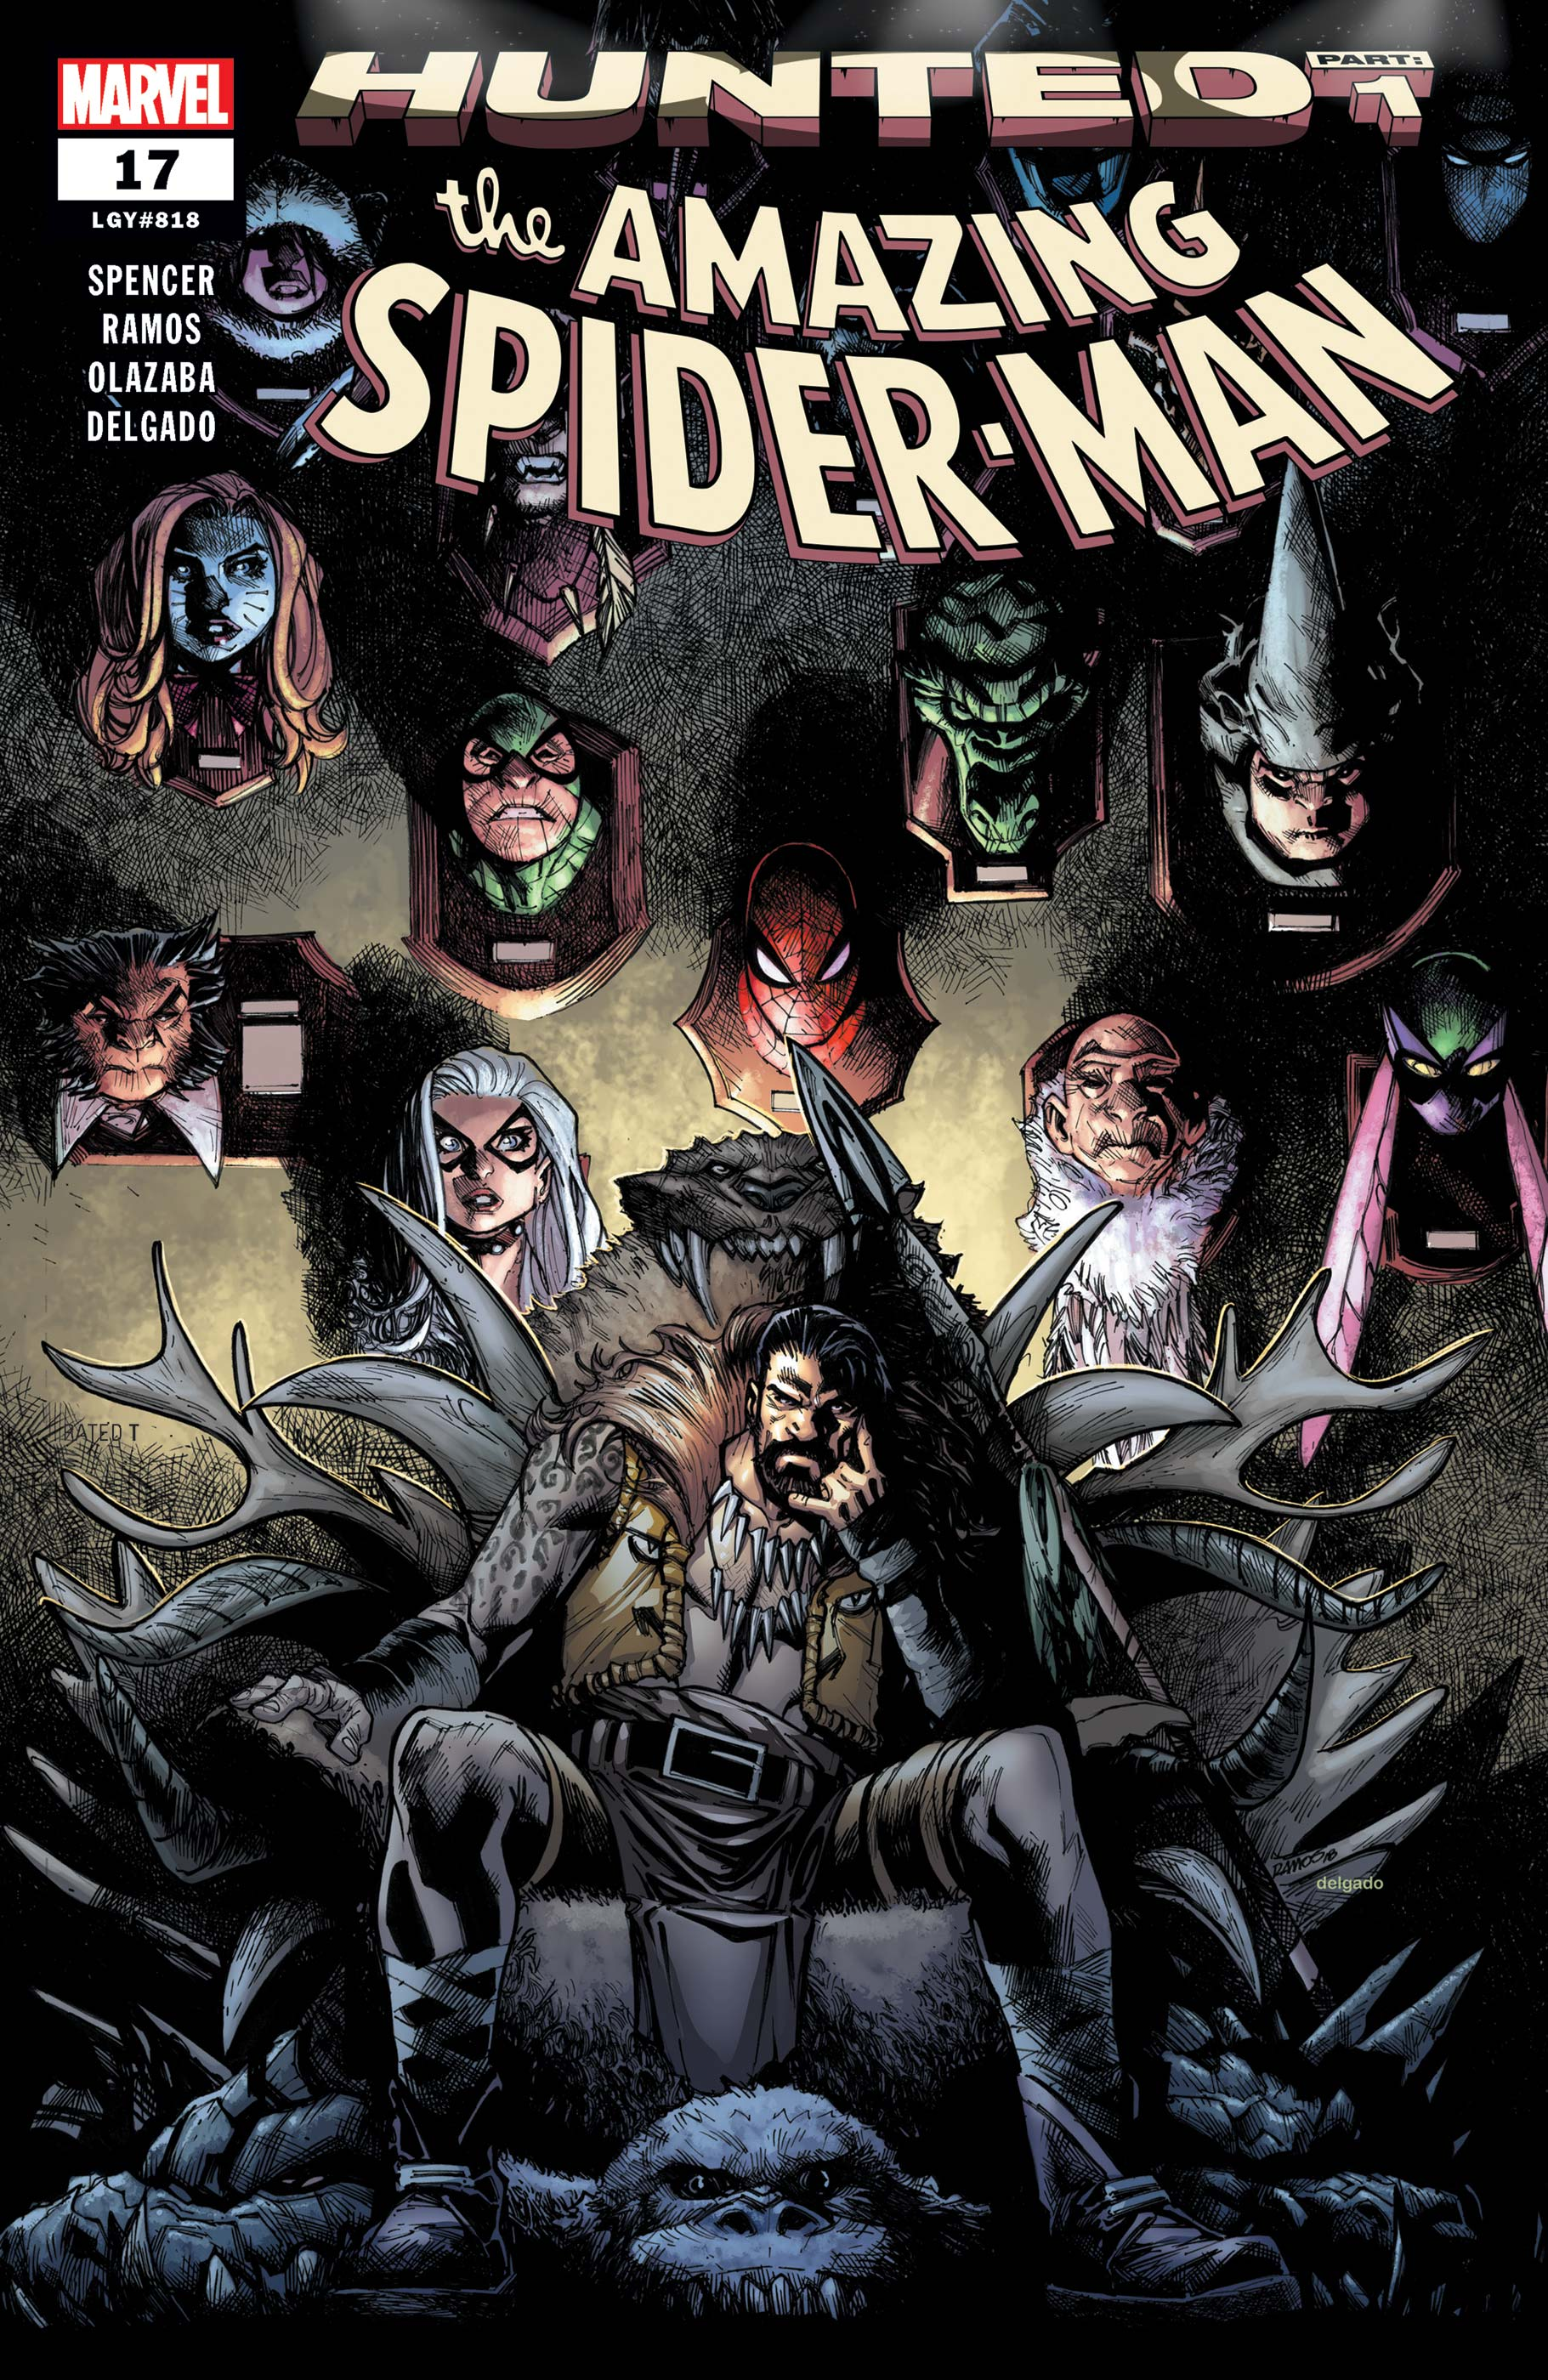 The Amazing Spider-Man (2018) #17